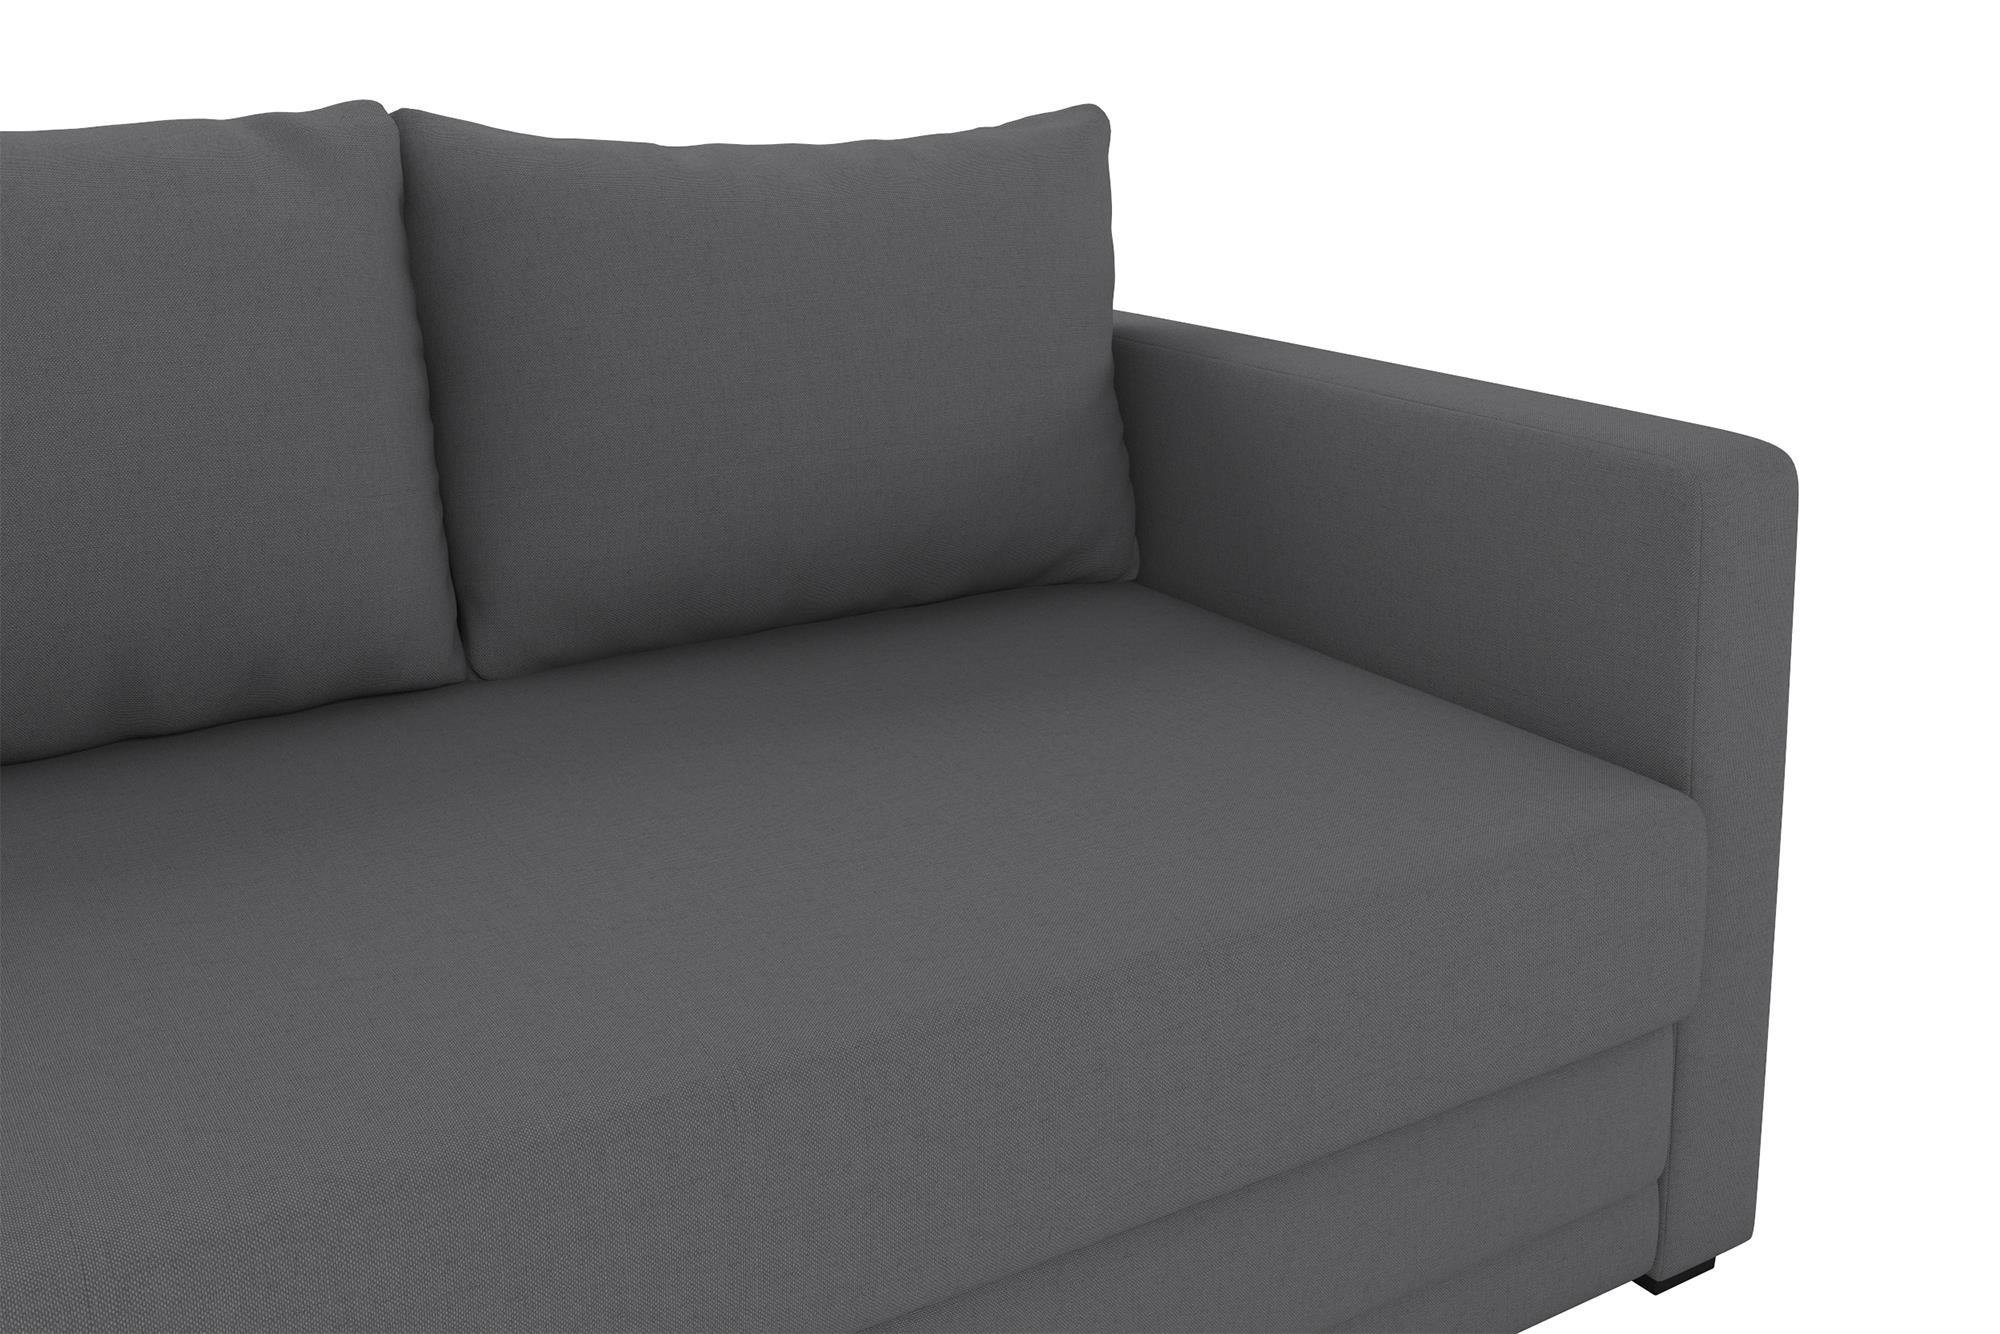 Grey Loveseat Sleeper Convertible Modern Sofa Pull Out Couch Pullout Bed